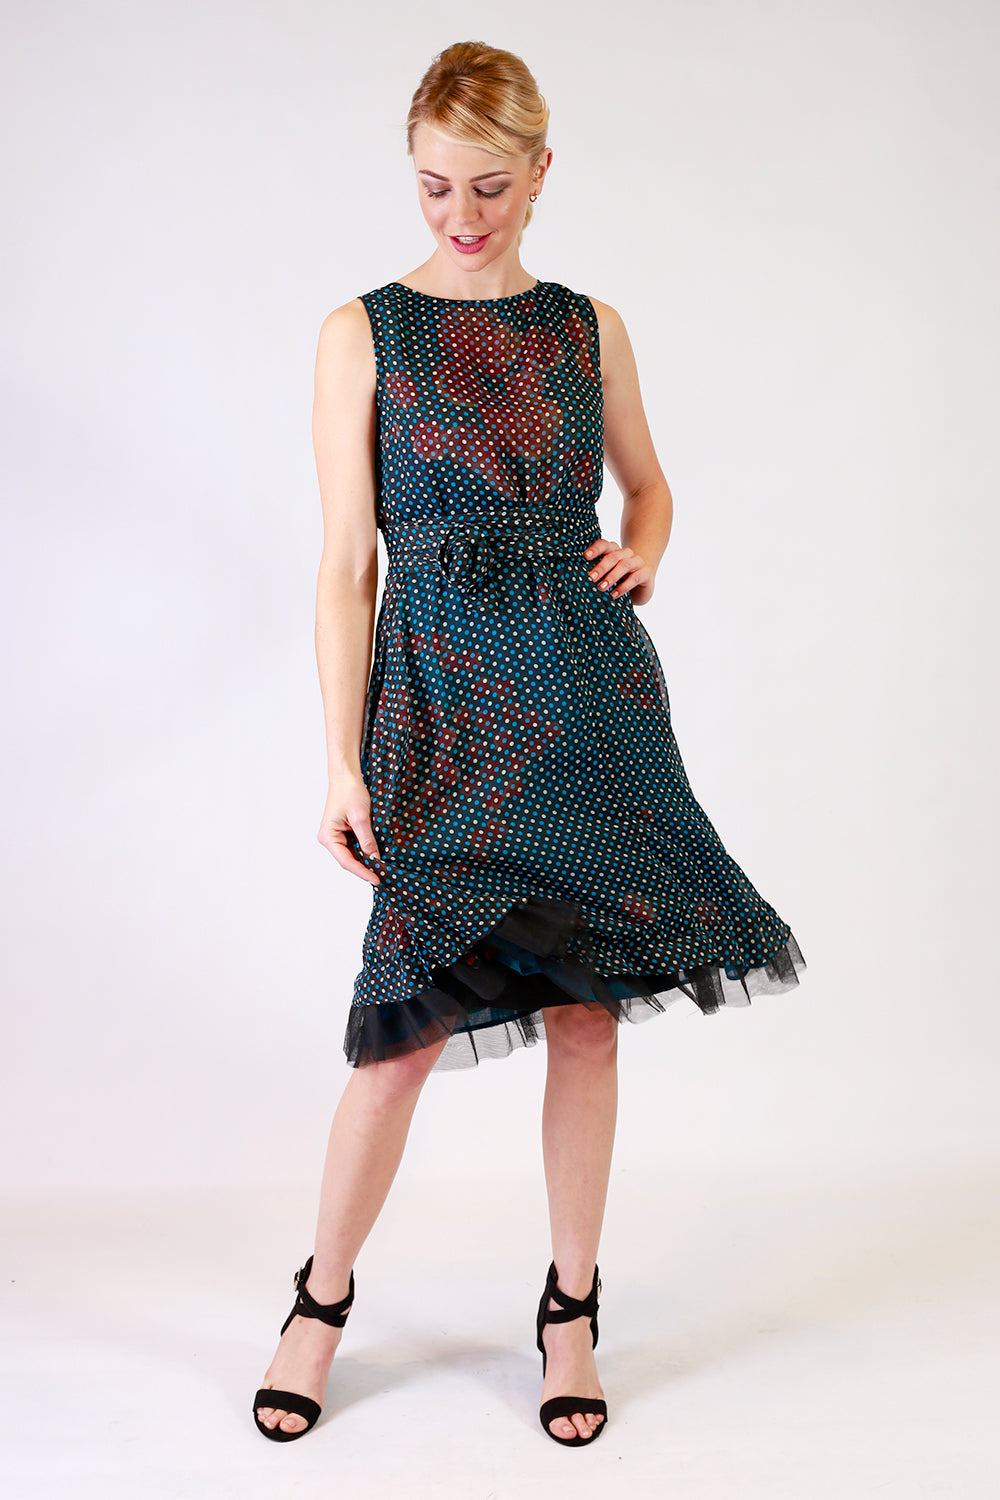 Address Unknown Flipit Wrap Dress